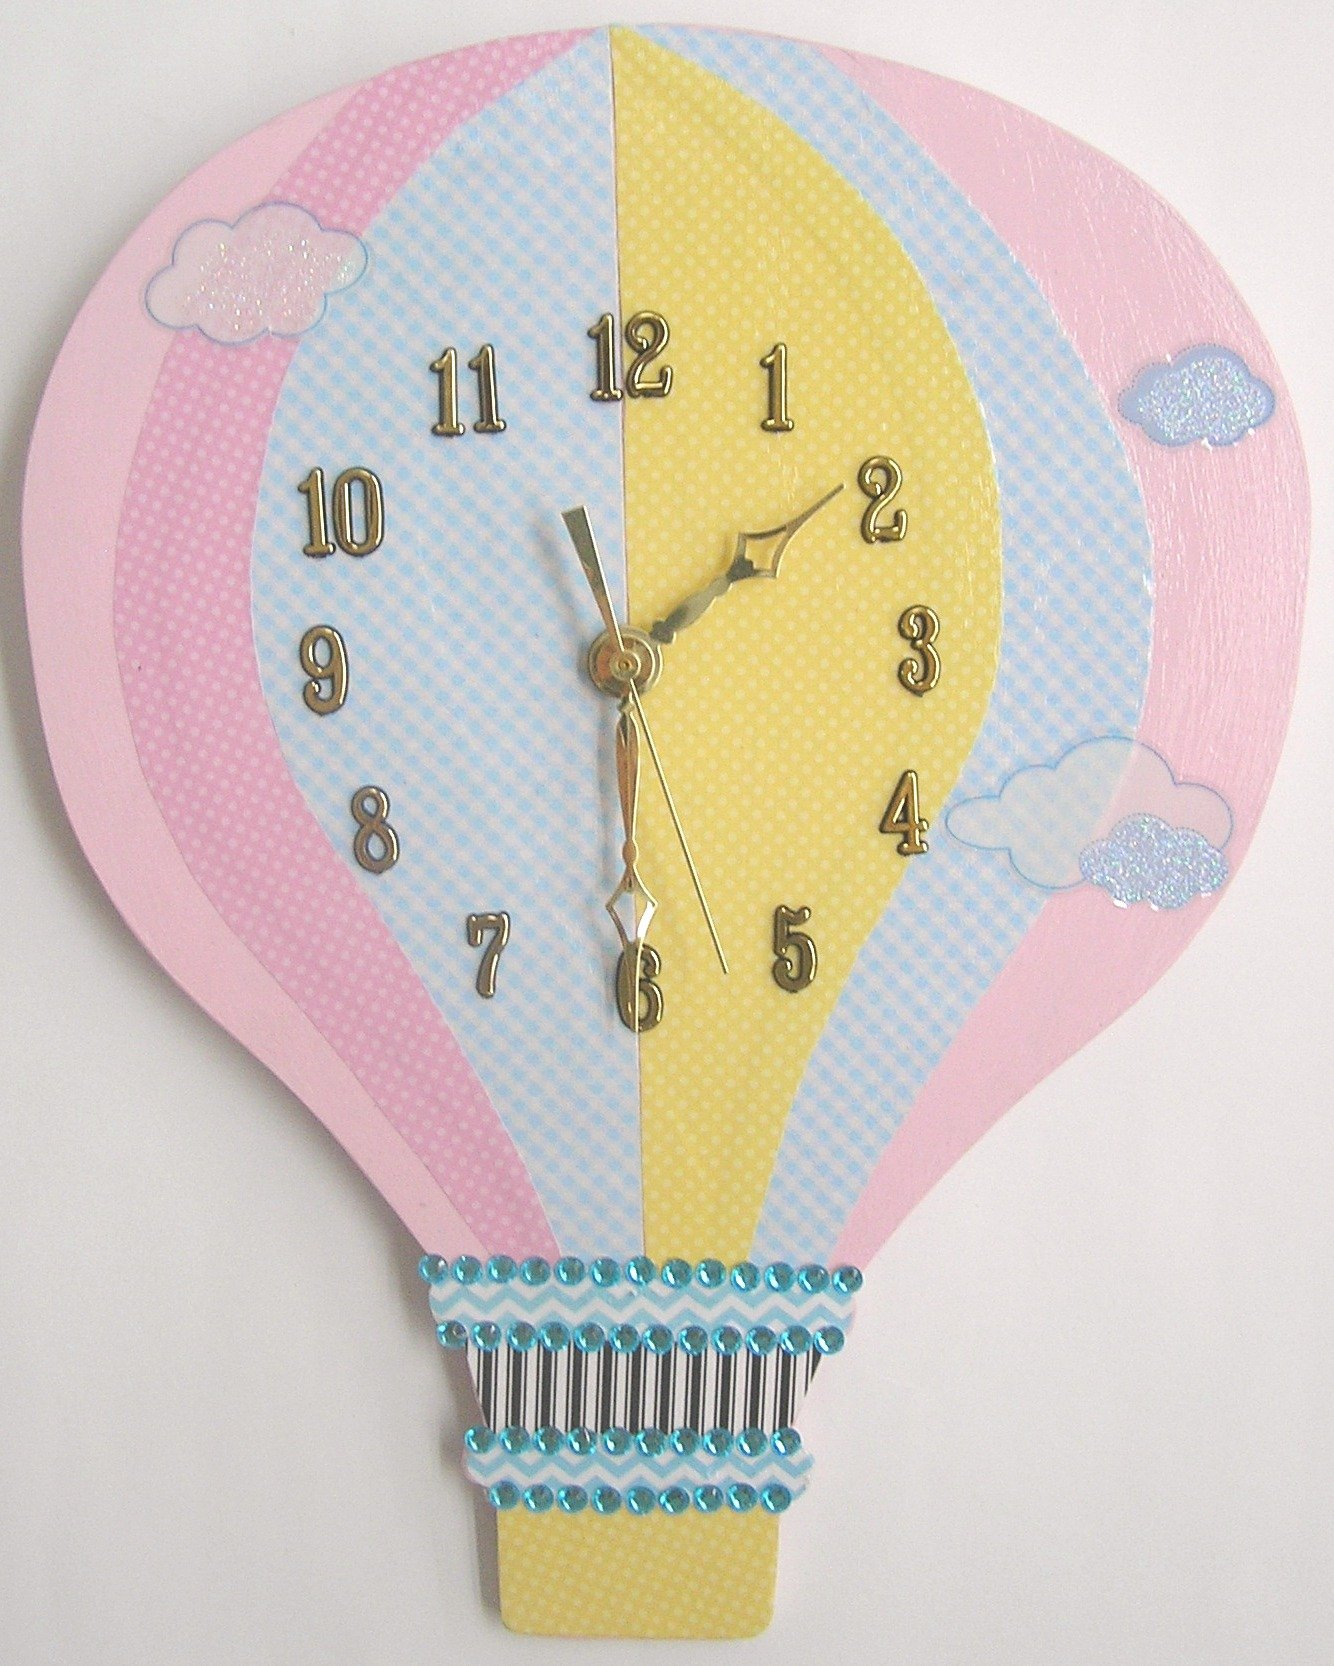 Cheap Hot Air Balloon Wall Decor, find Hot Air Balloon Wall Decor ...